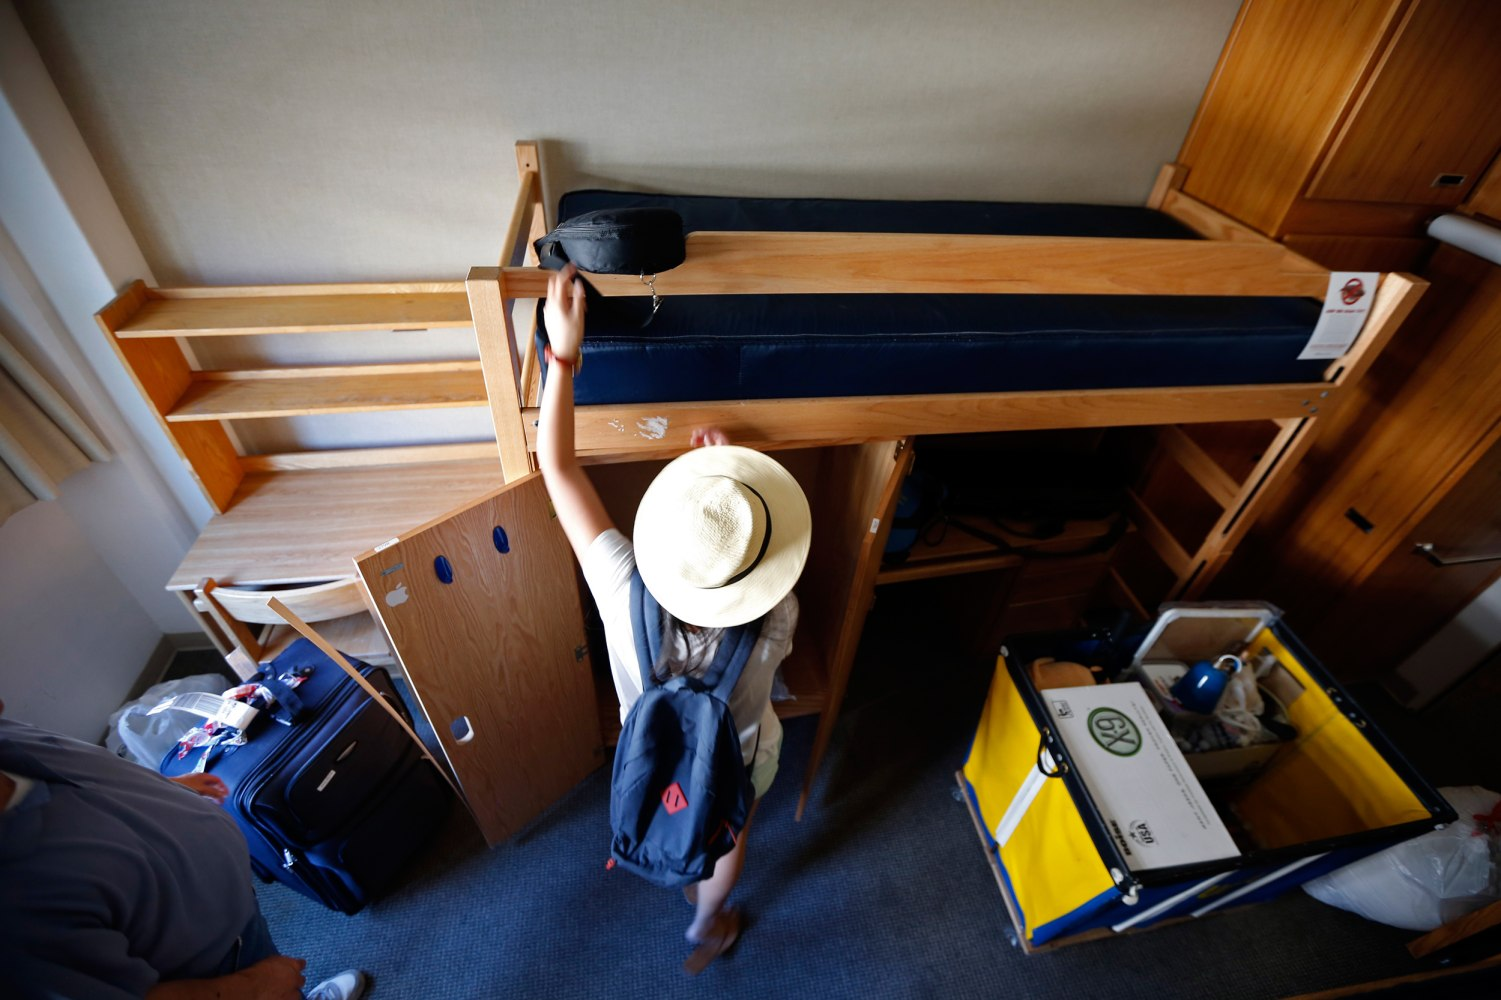 Ready for College Move-In Day? Ten Tips to Help Parents and Teens